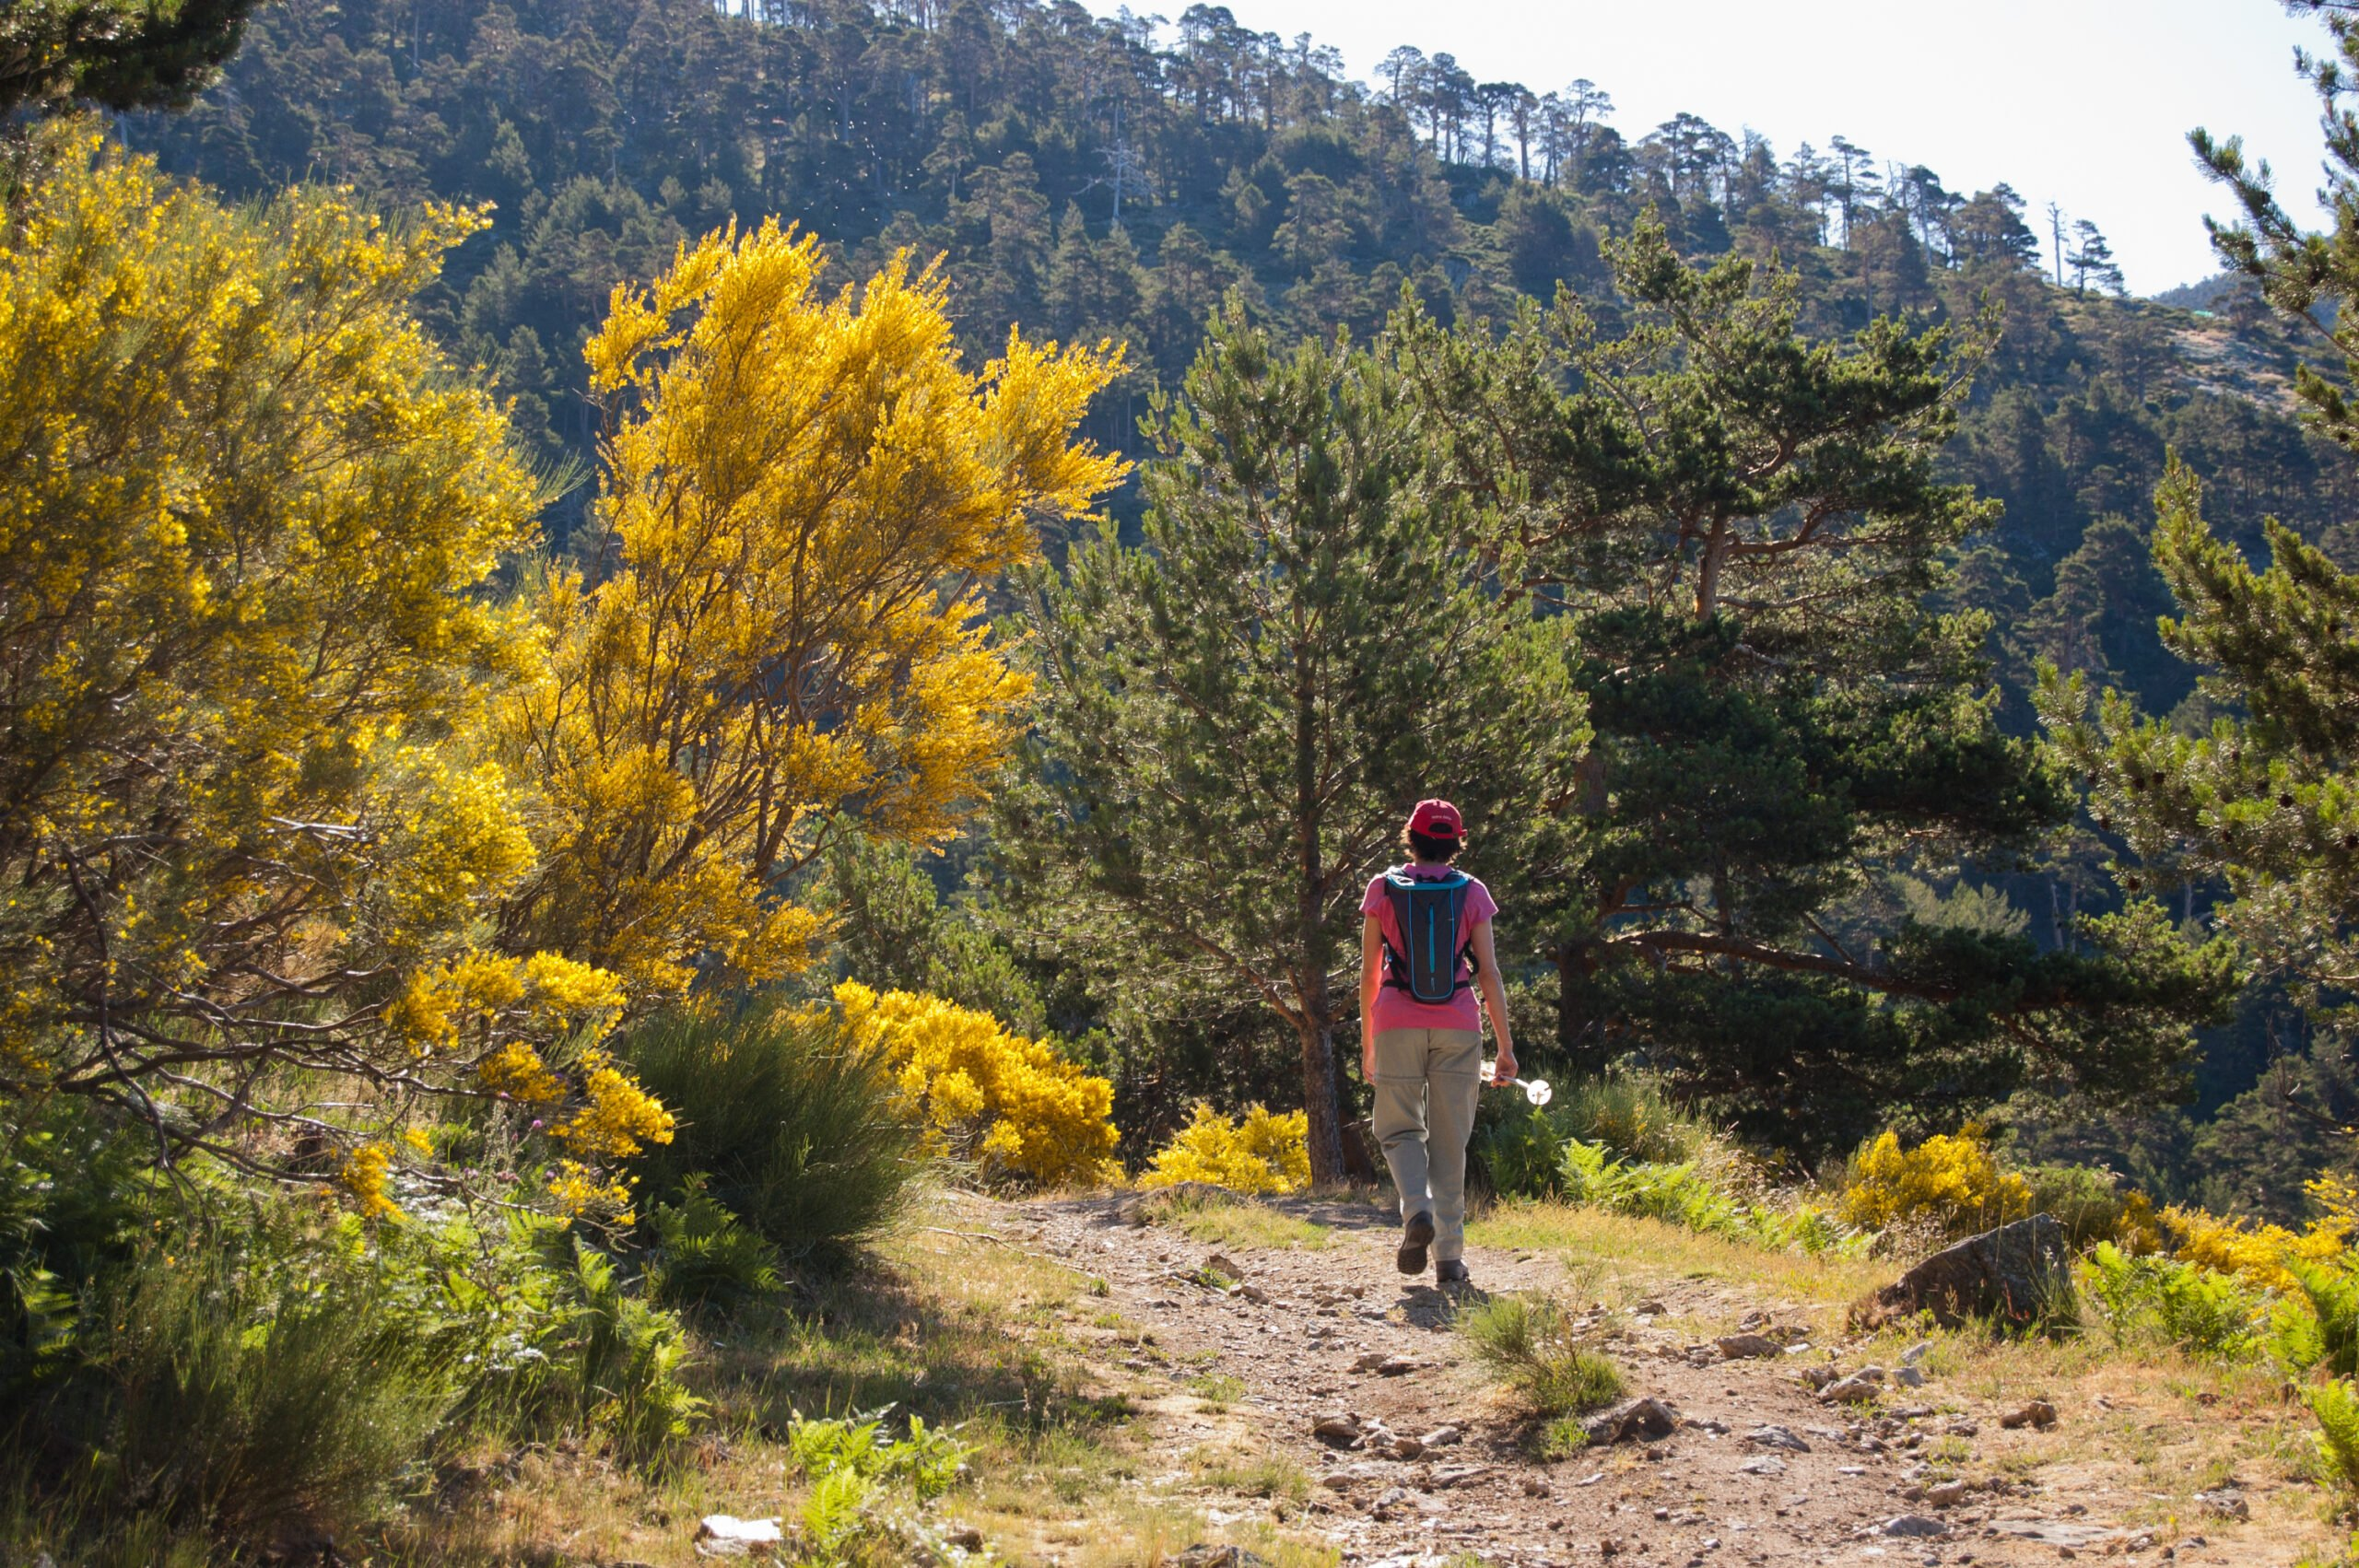 Walk Through Scot Pine Forests In Our Madrid Hiking Tour